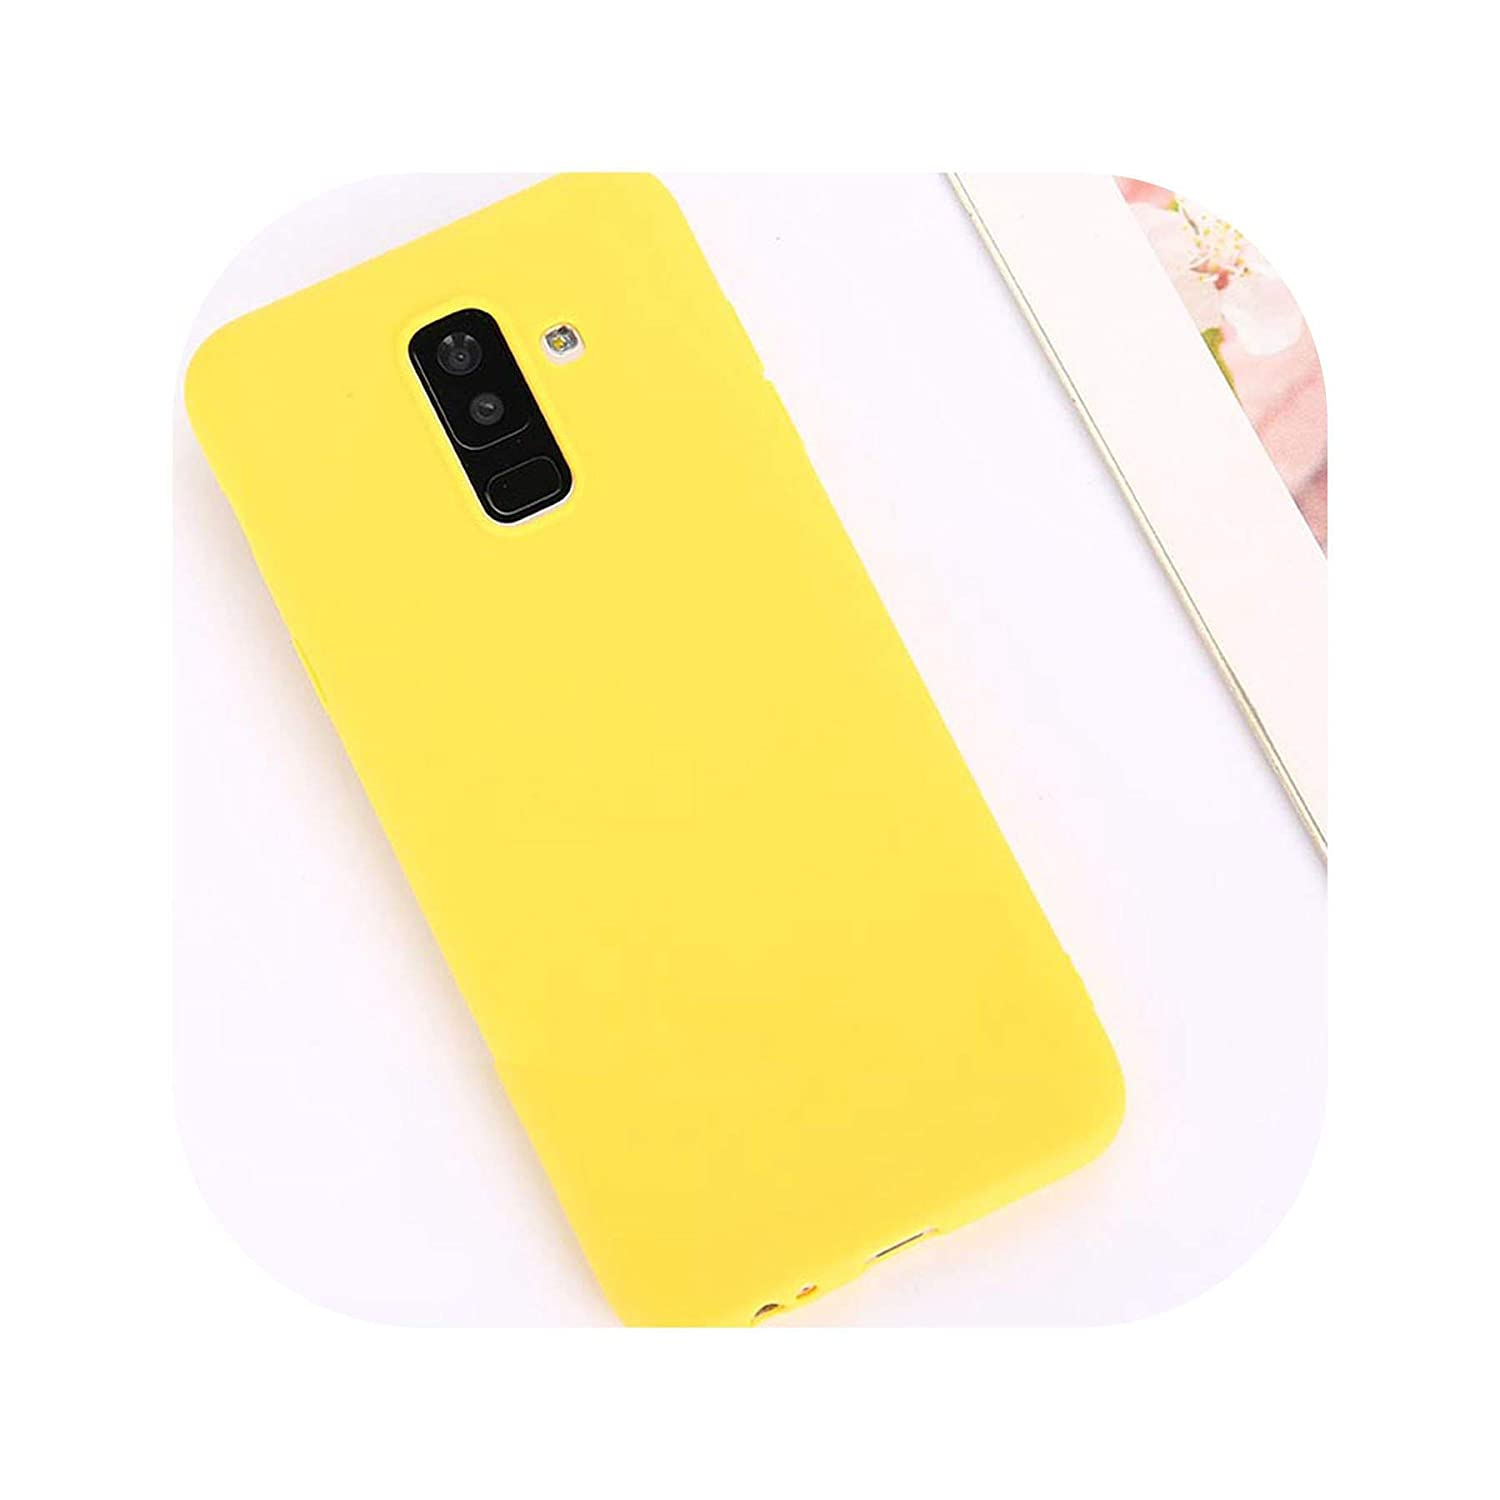 Candy Color Case for Samsung Galaxy A50 A70 A5 2017 J4 J6 Plus J8 A8 A6 A7 2018 S8 S9 S10 Plus S10E Note9 M20 Soft Cover,Yellow,A50